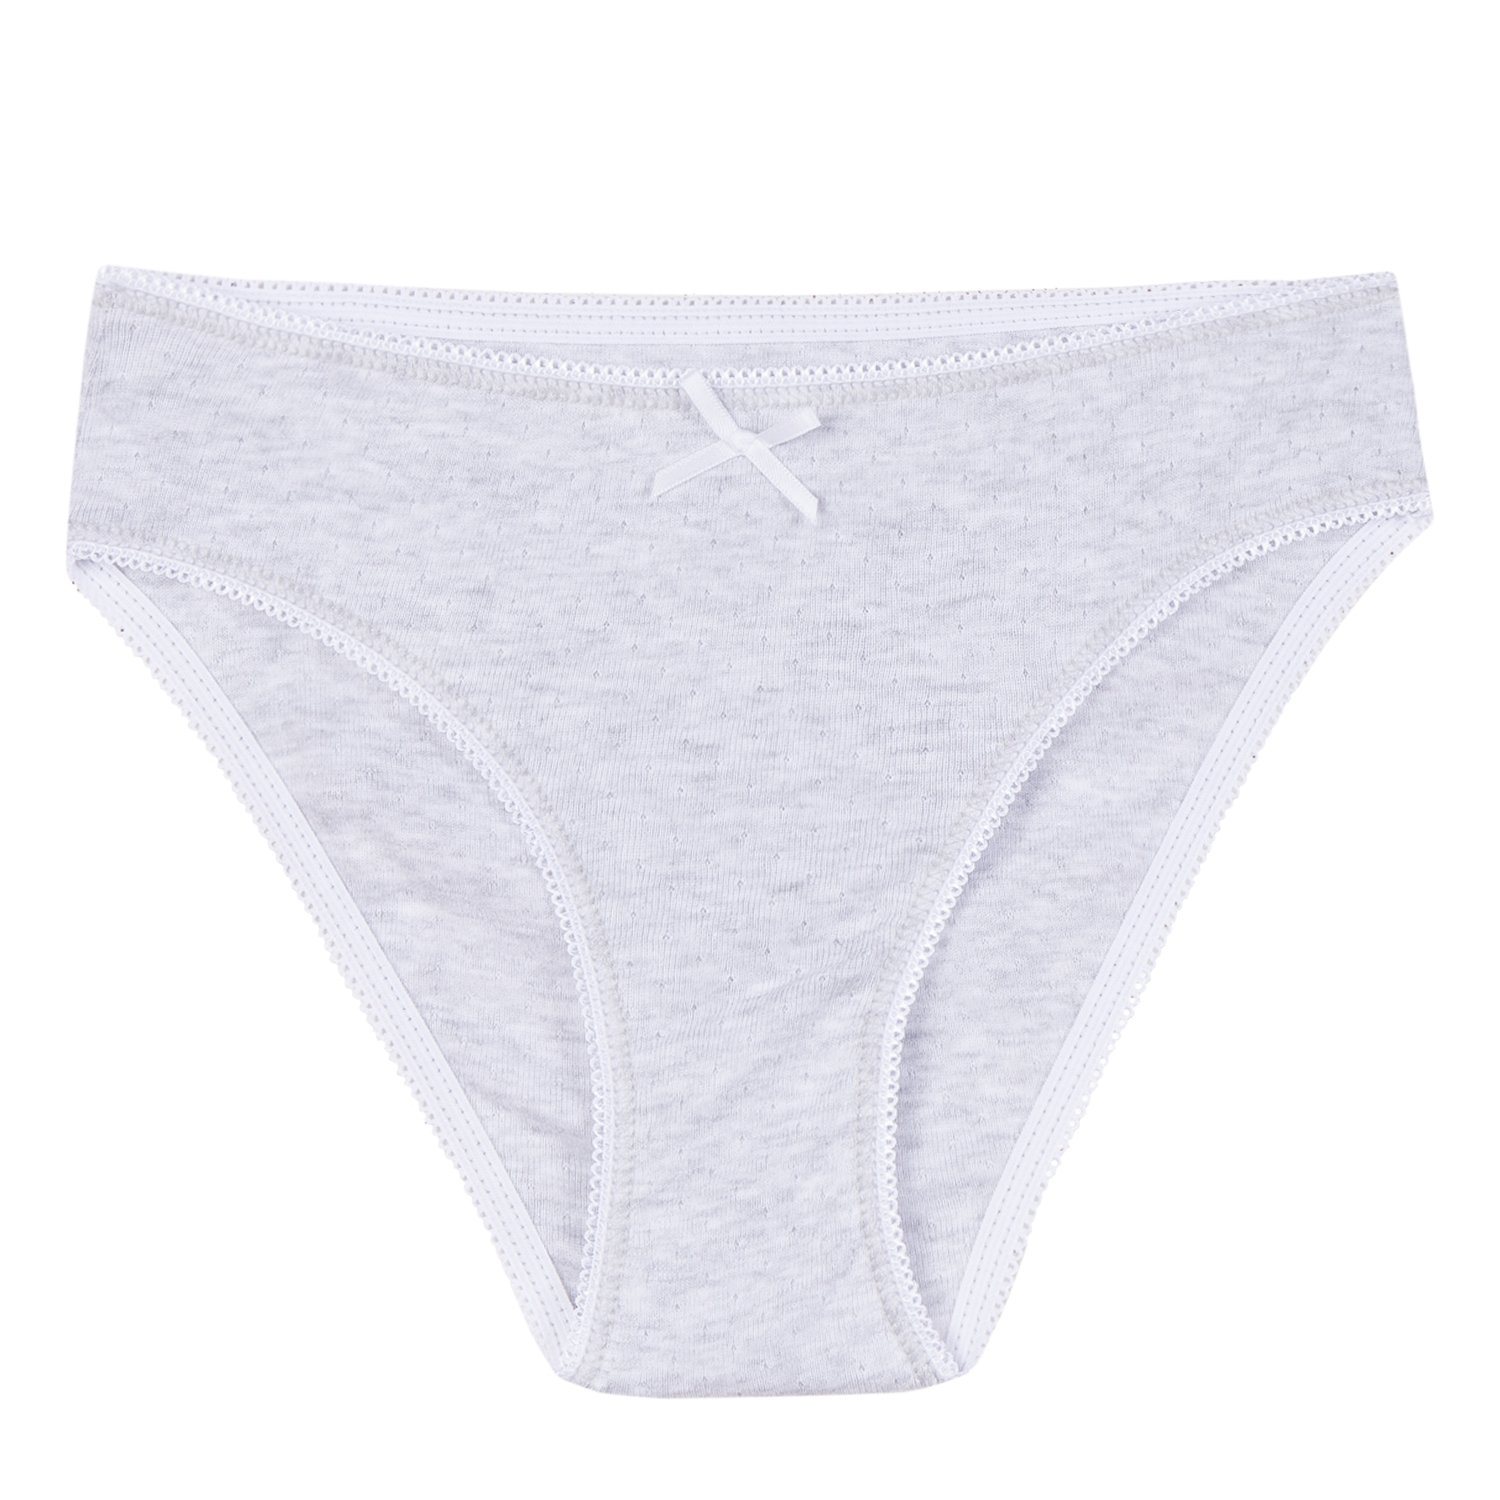 Absorba Underwear Girl's Panties Brief